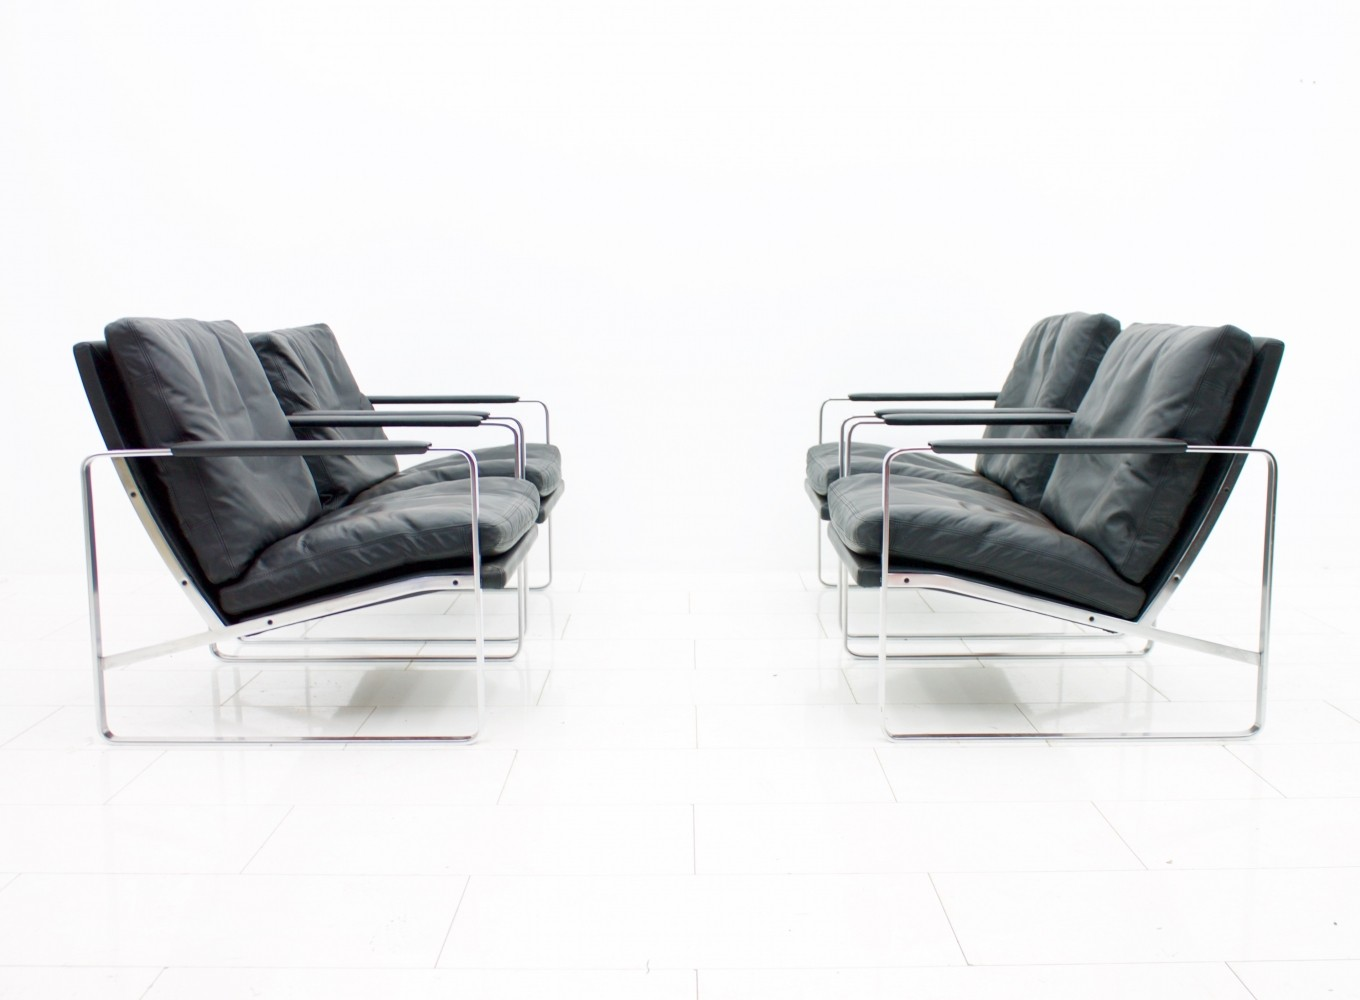 4 x model 710 lounge chair by Preben Fabricius for Walter Knoll, 1970s